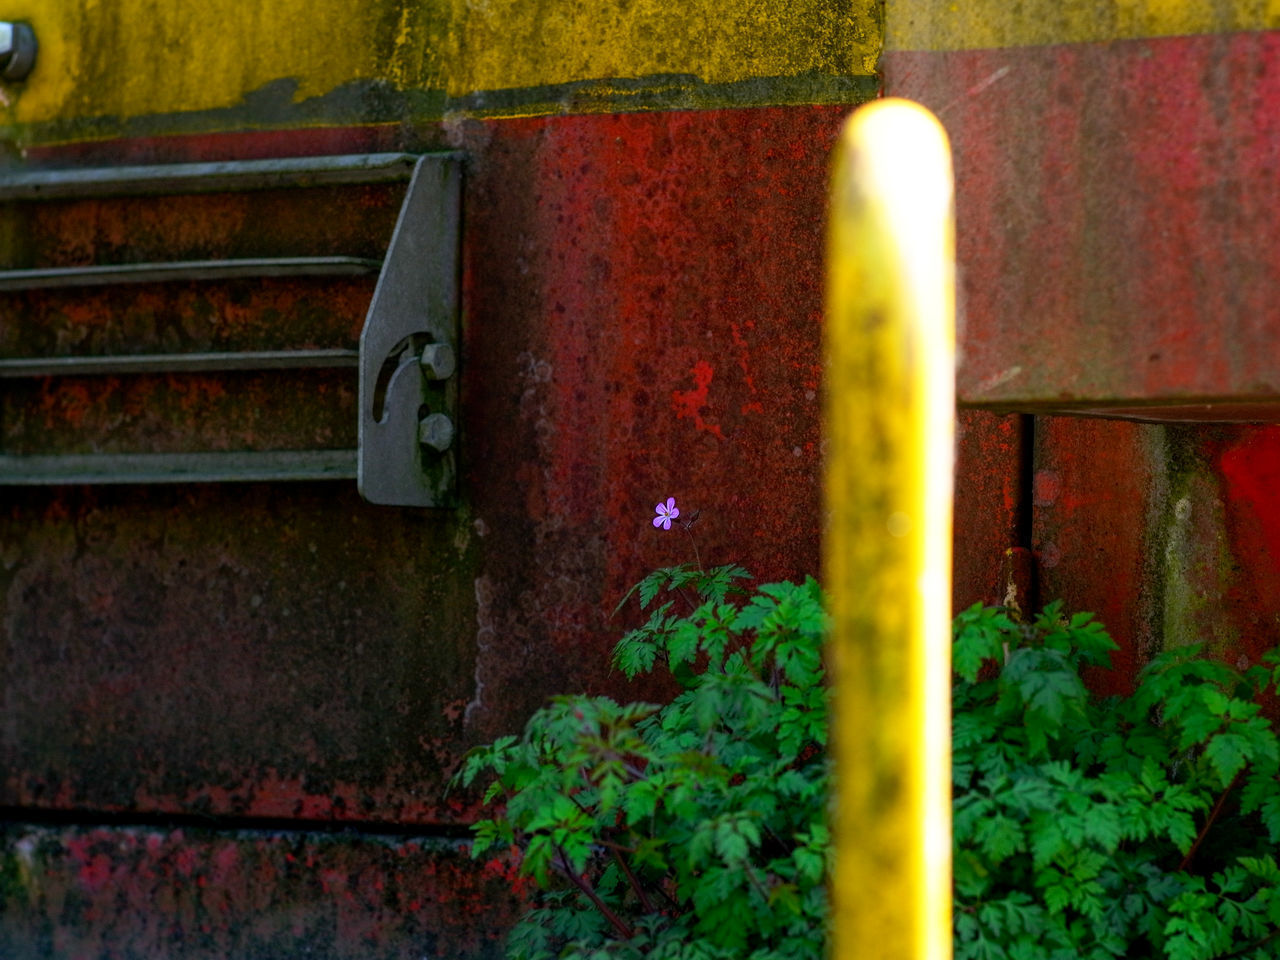 no people, plant, metal, close-up, day, growth, nature, outdoors, rusty, architecture, wall - building feature, leaf, yellow, built structure, plant part, selective focus, railing, green color, wall, pipe - tube